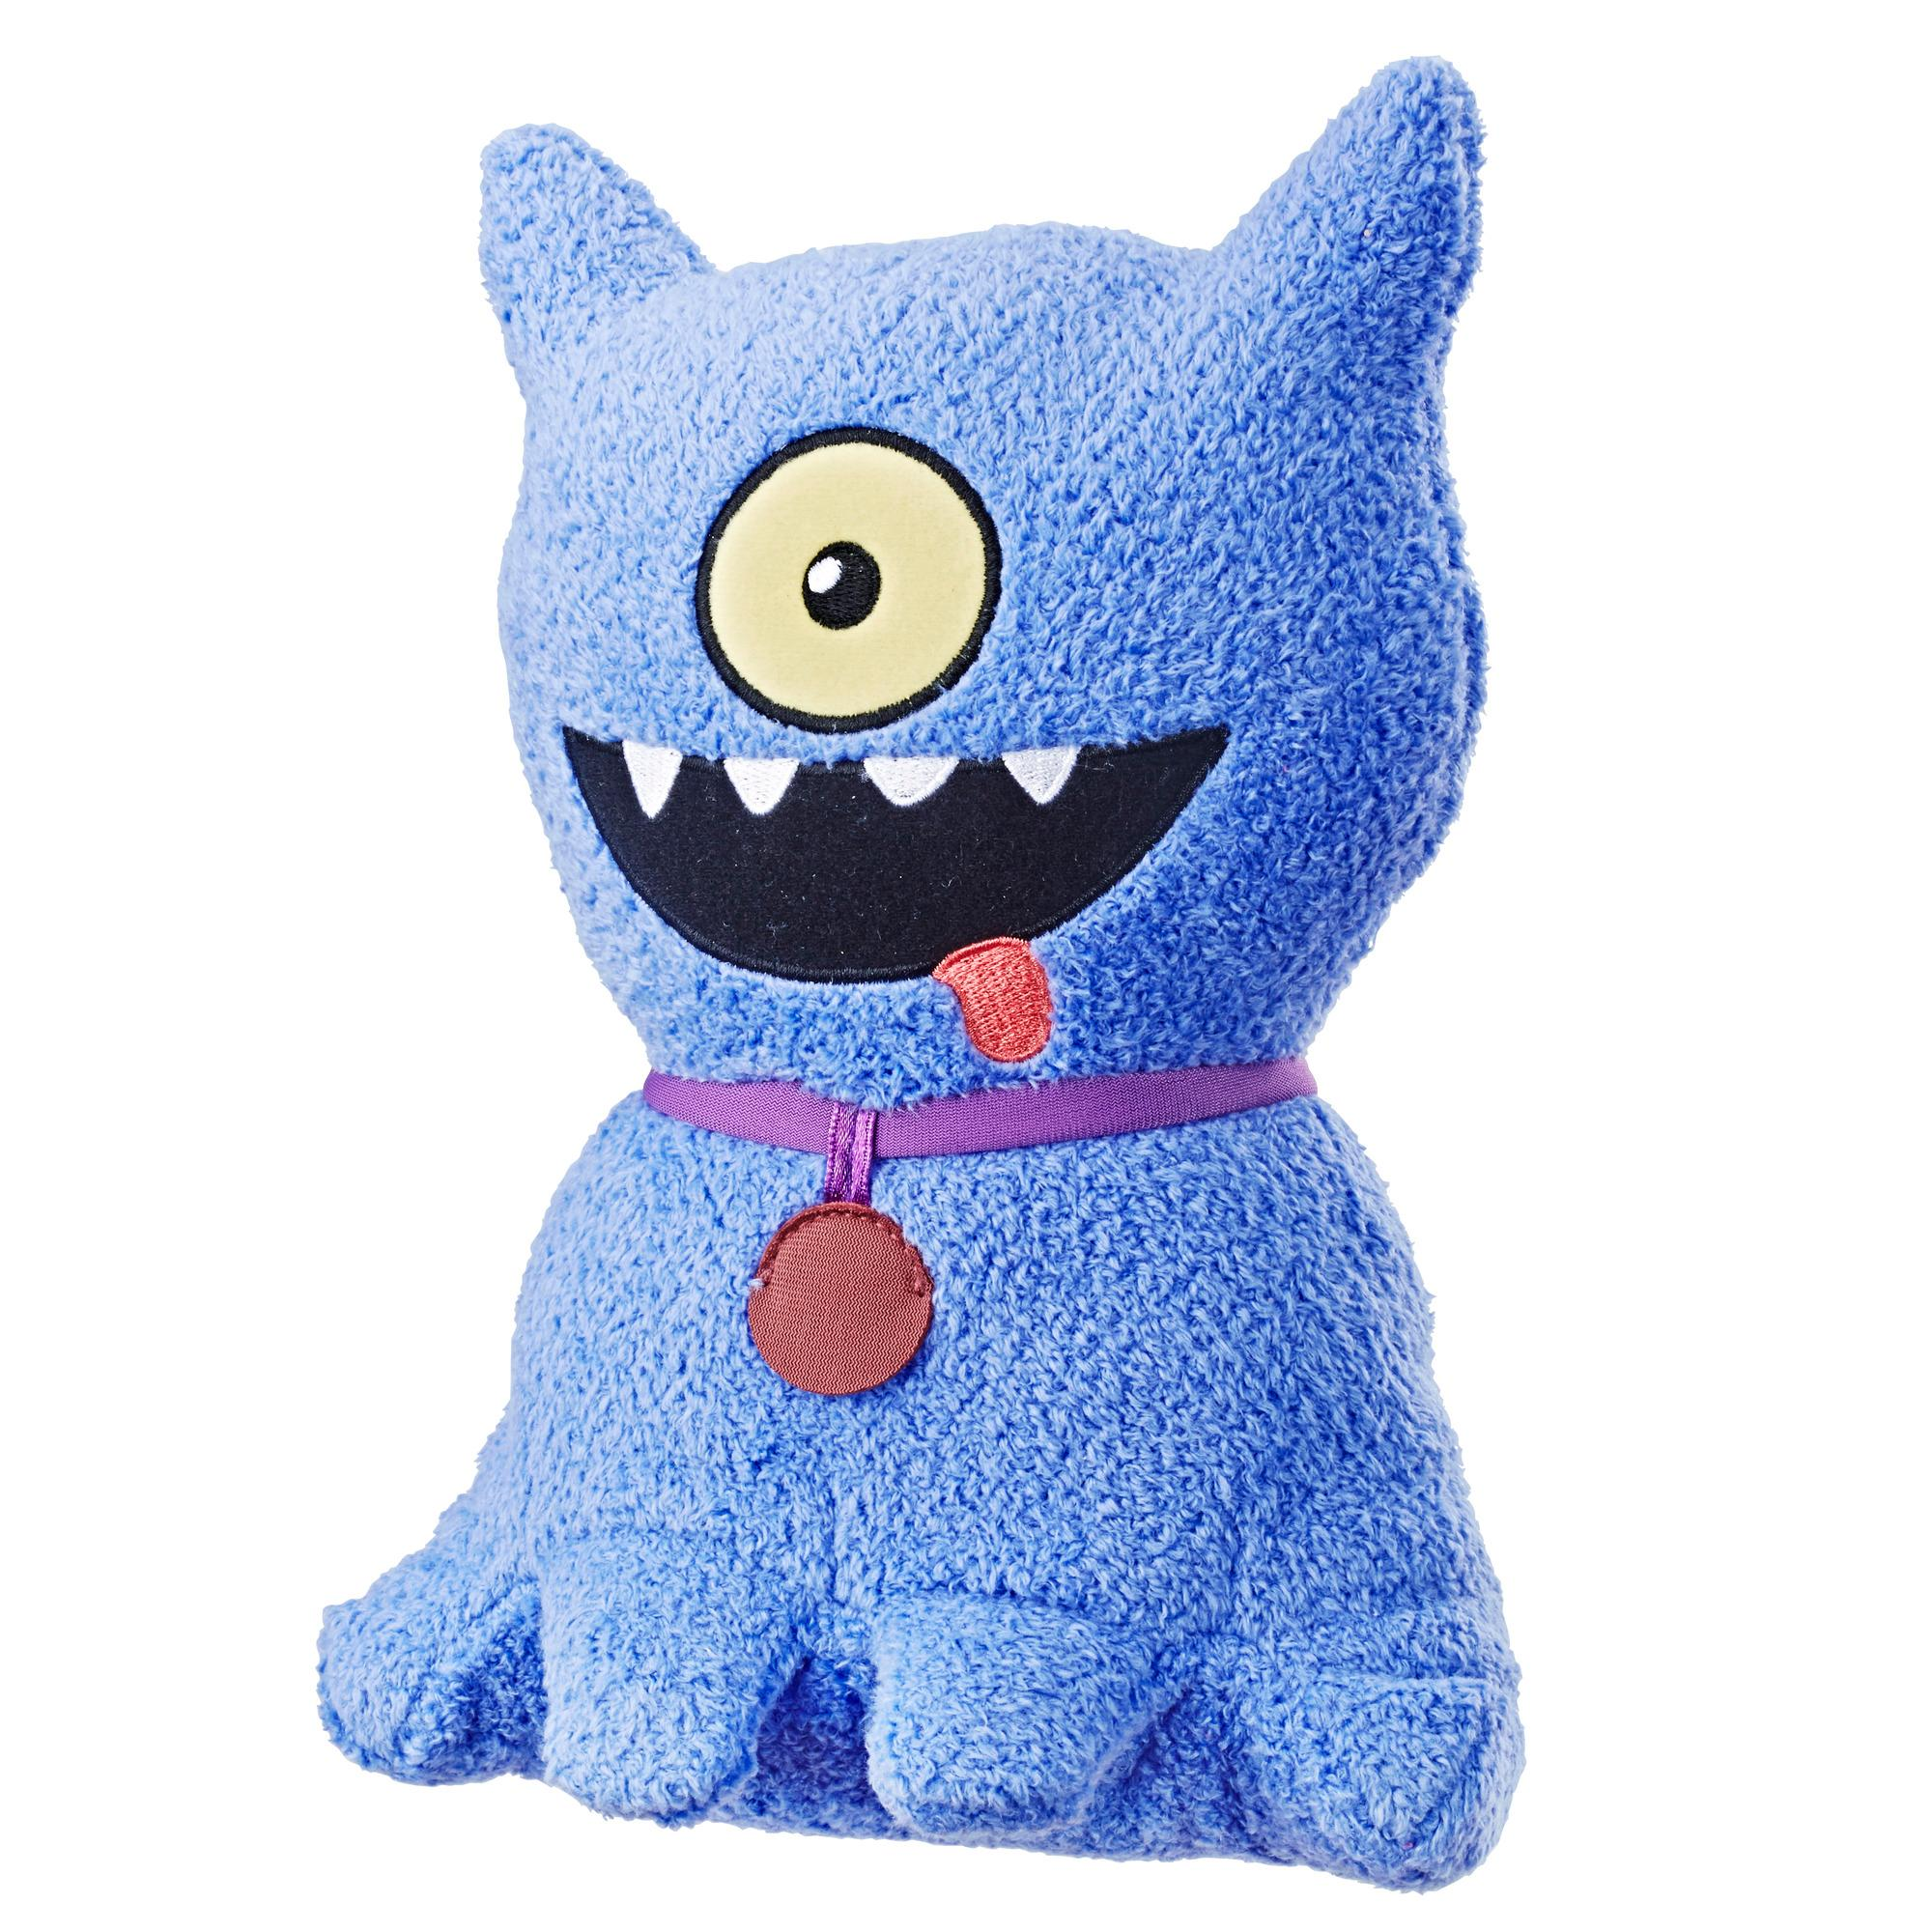 UglyDolls Feature Sounds Ugly Dog, Stuffed Plush Toy that Talks, 23 cm. tall